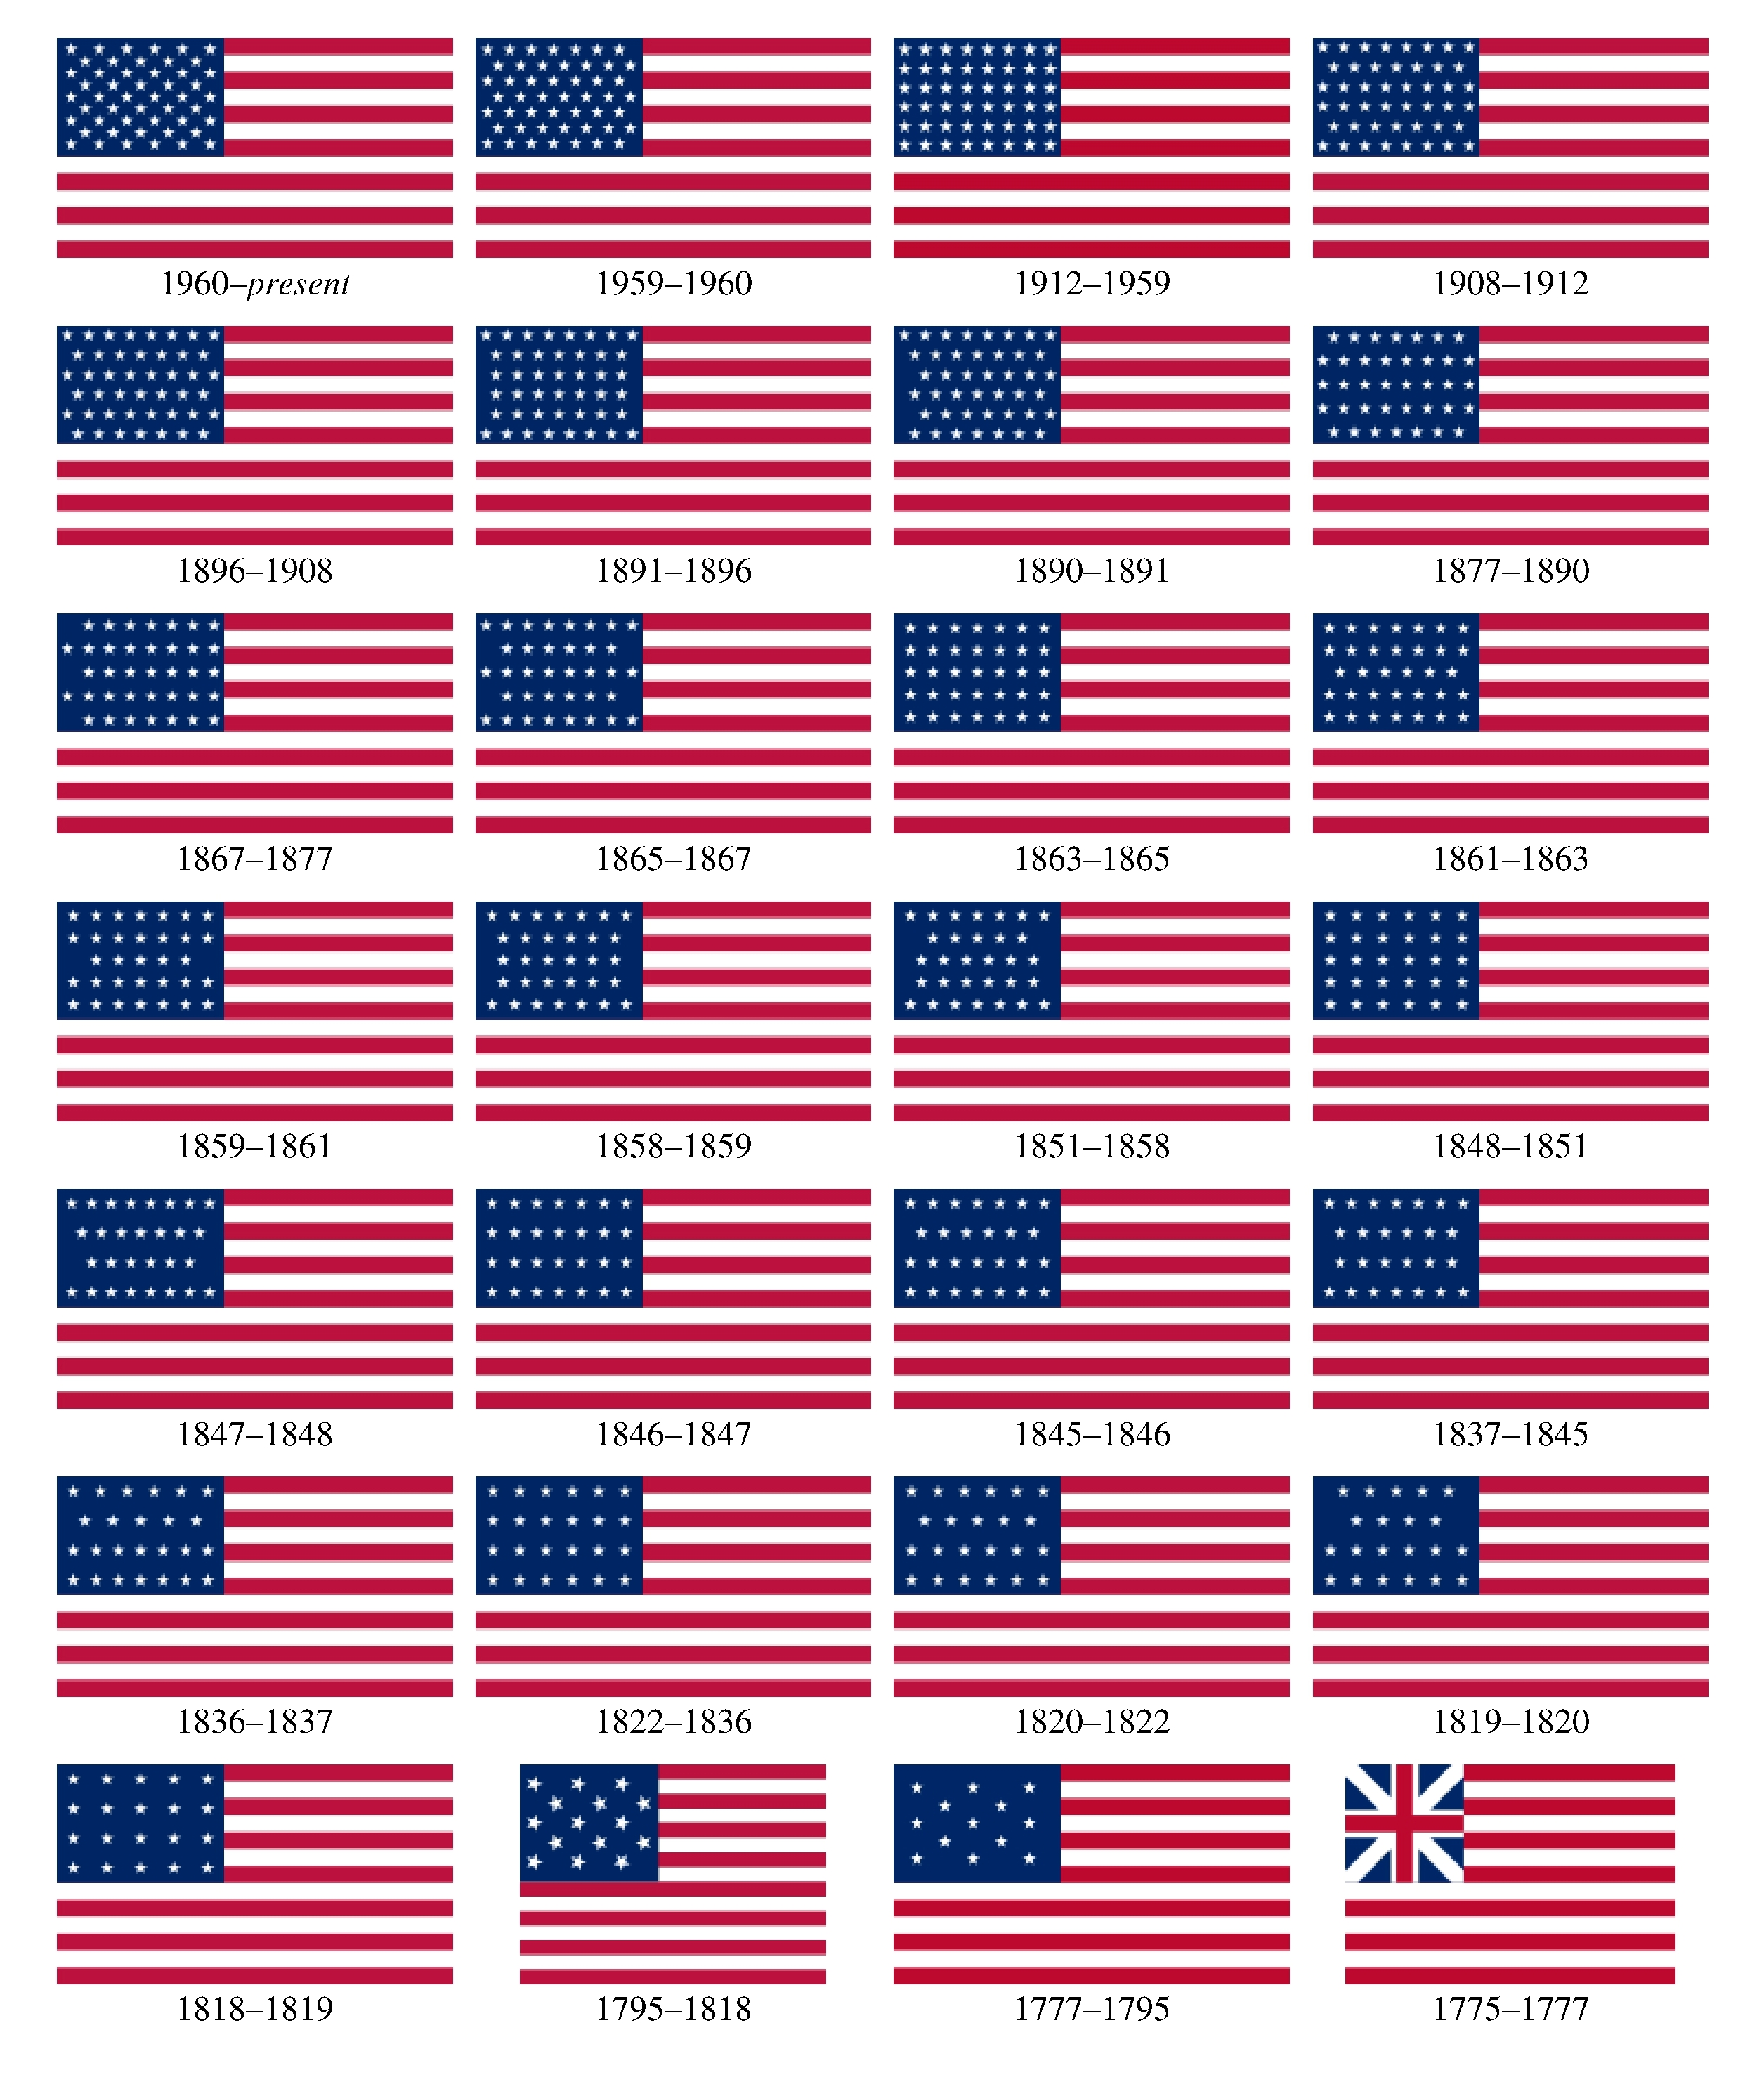 navy club uss carbon county ship 260 featured flags of